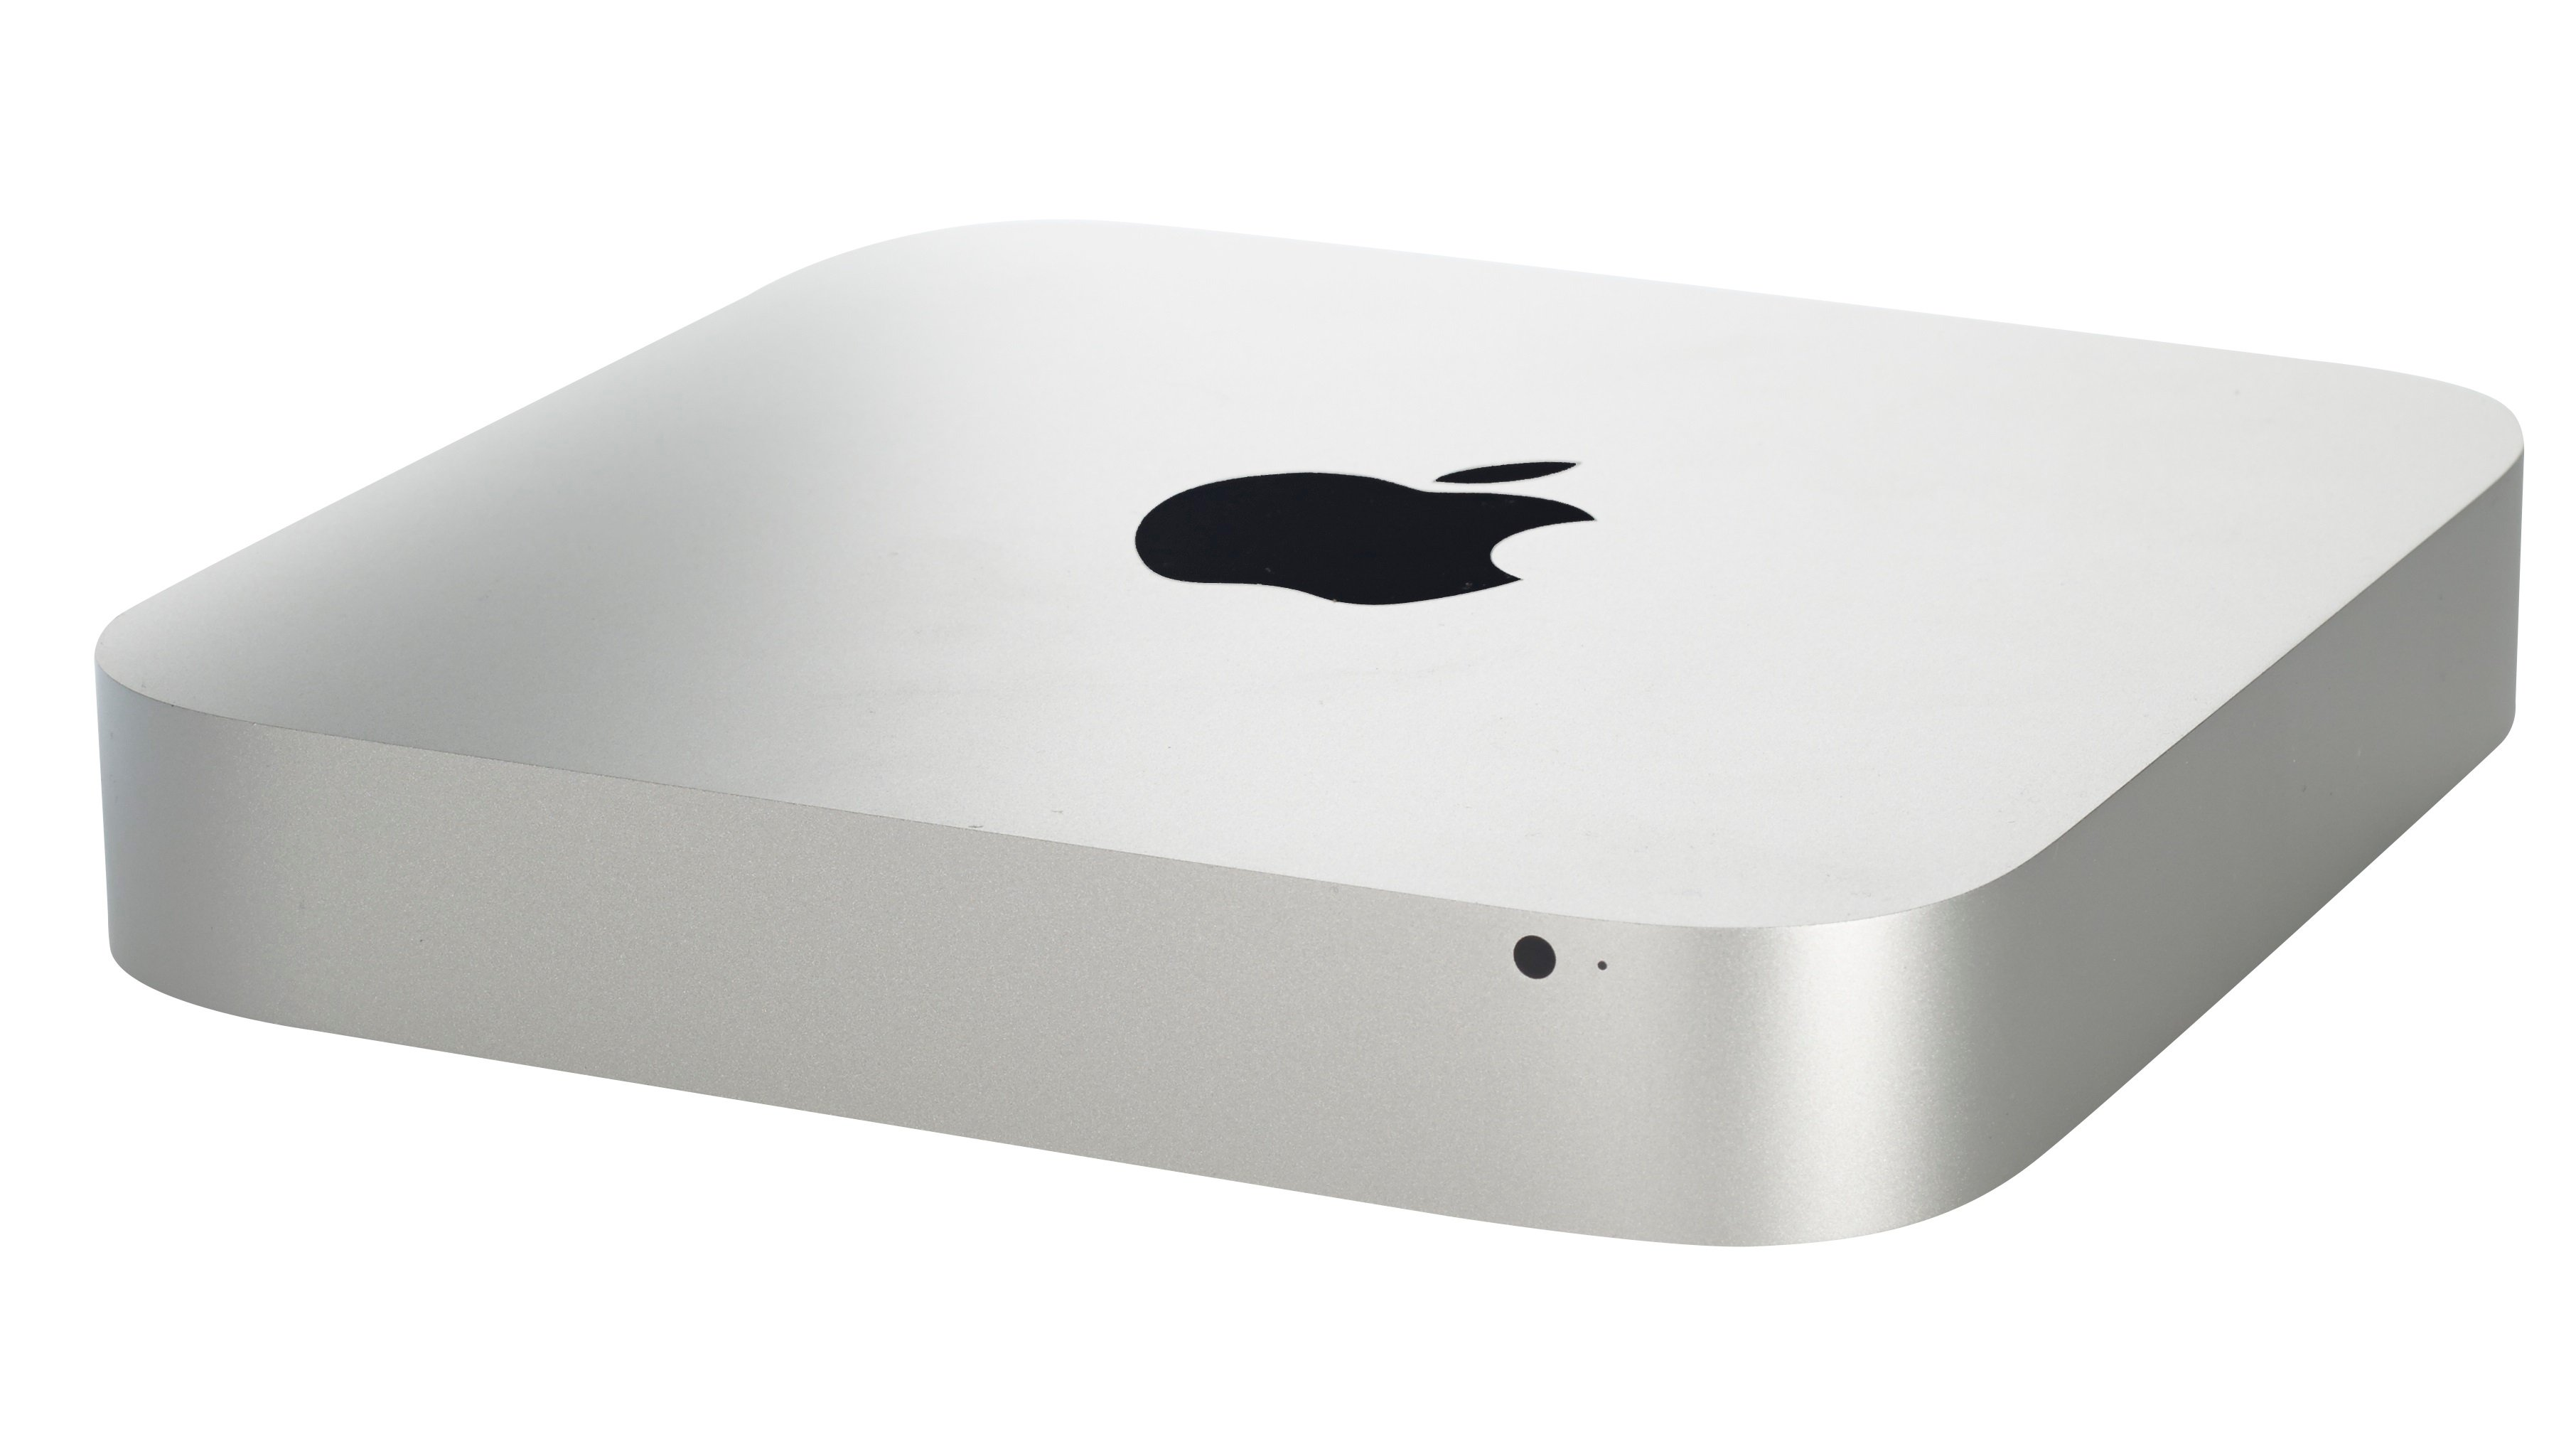 mac mini 2014 1.4 vs 2.6